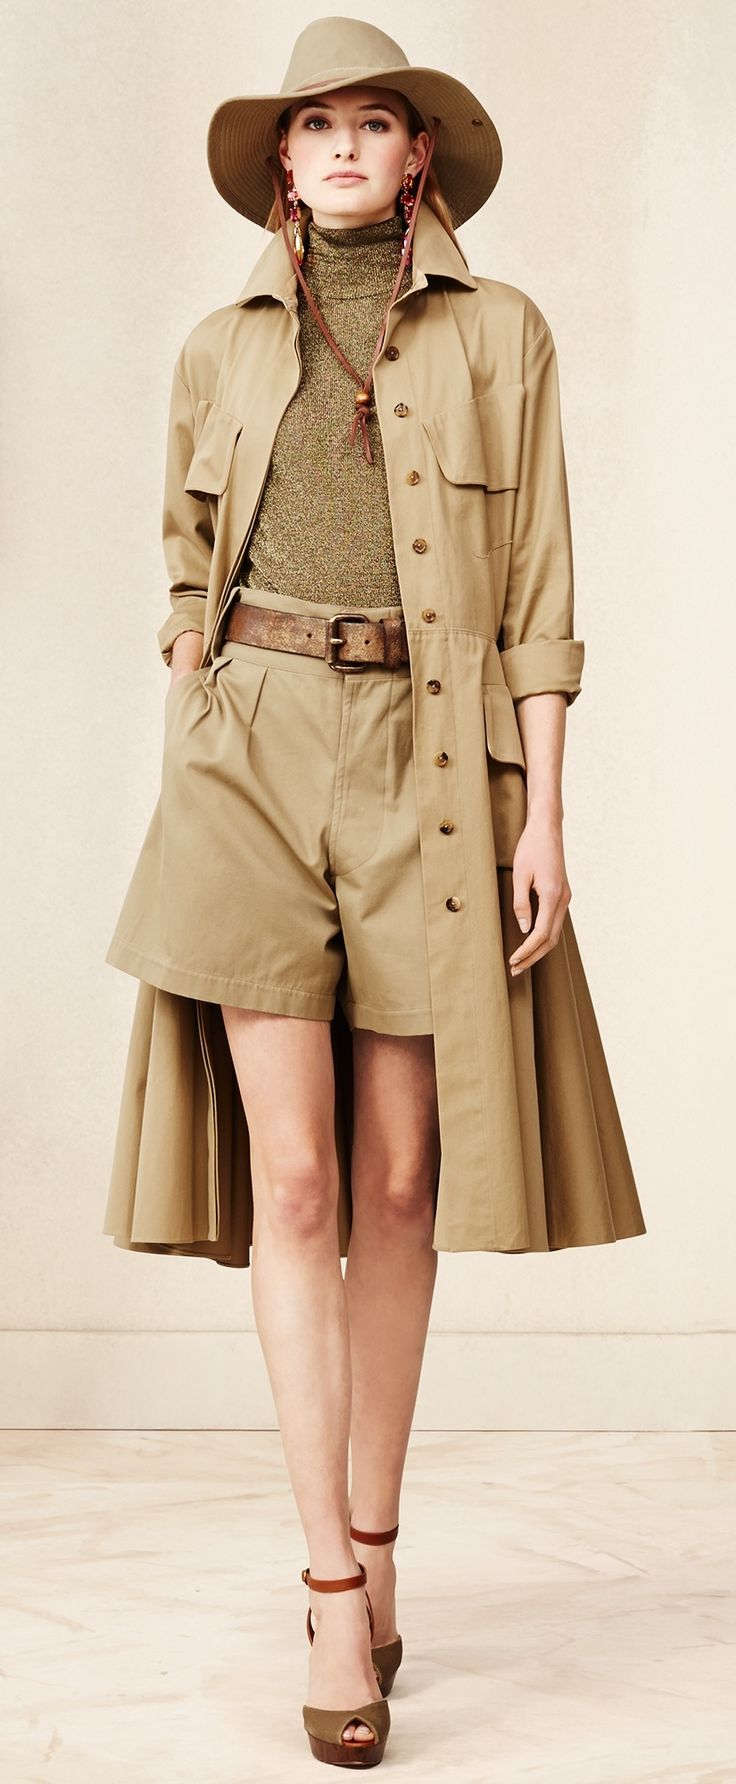 56 Best Images About Safari Fashion And Style On Pinterest Ralph Lauren Emily Didonato And